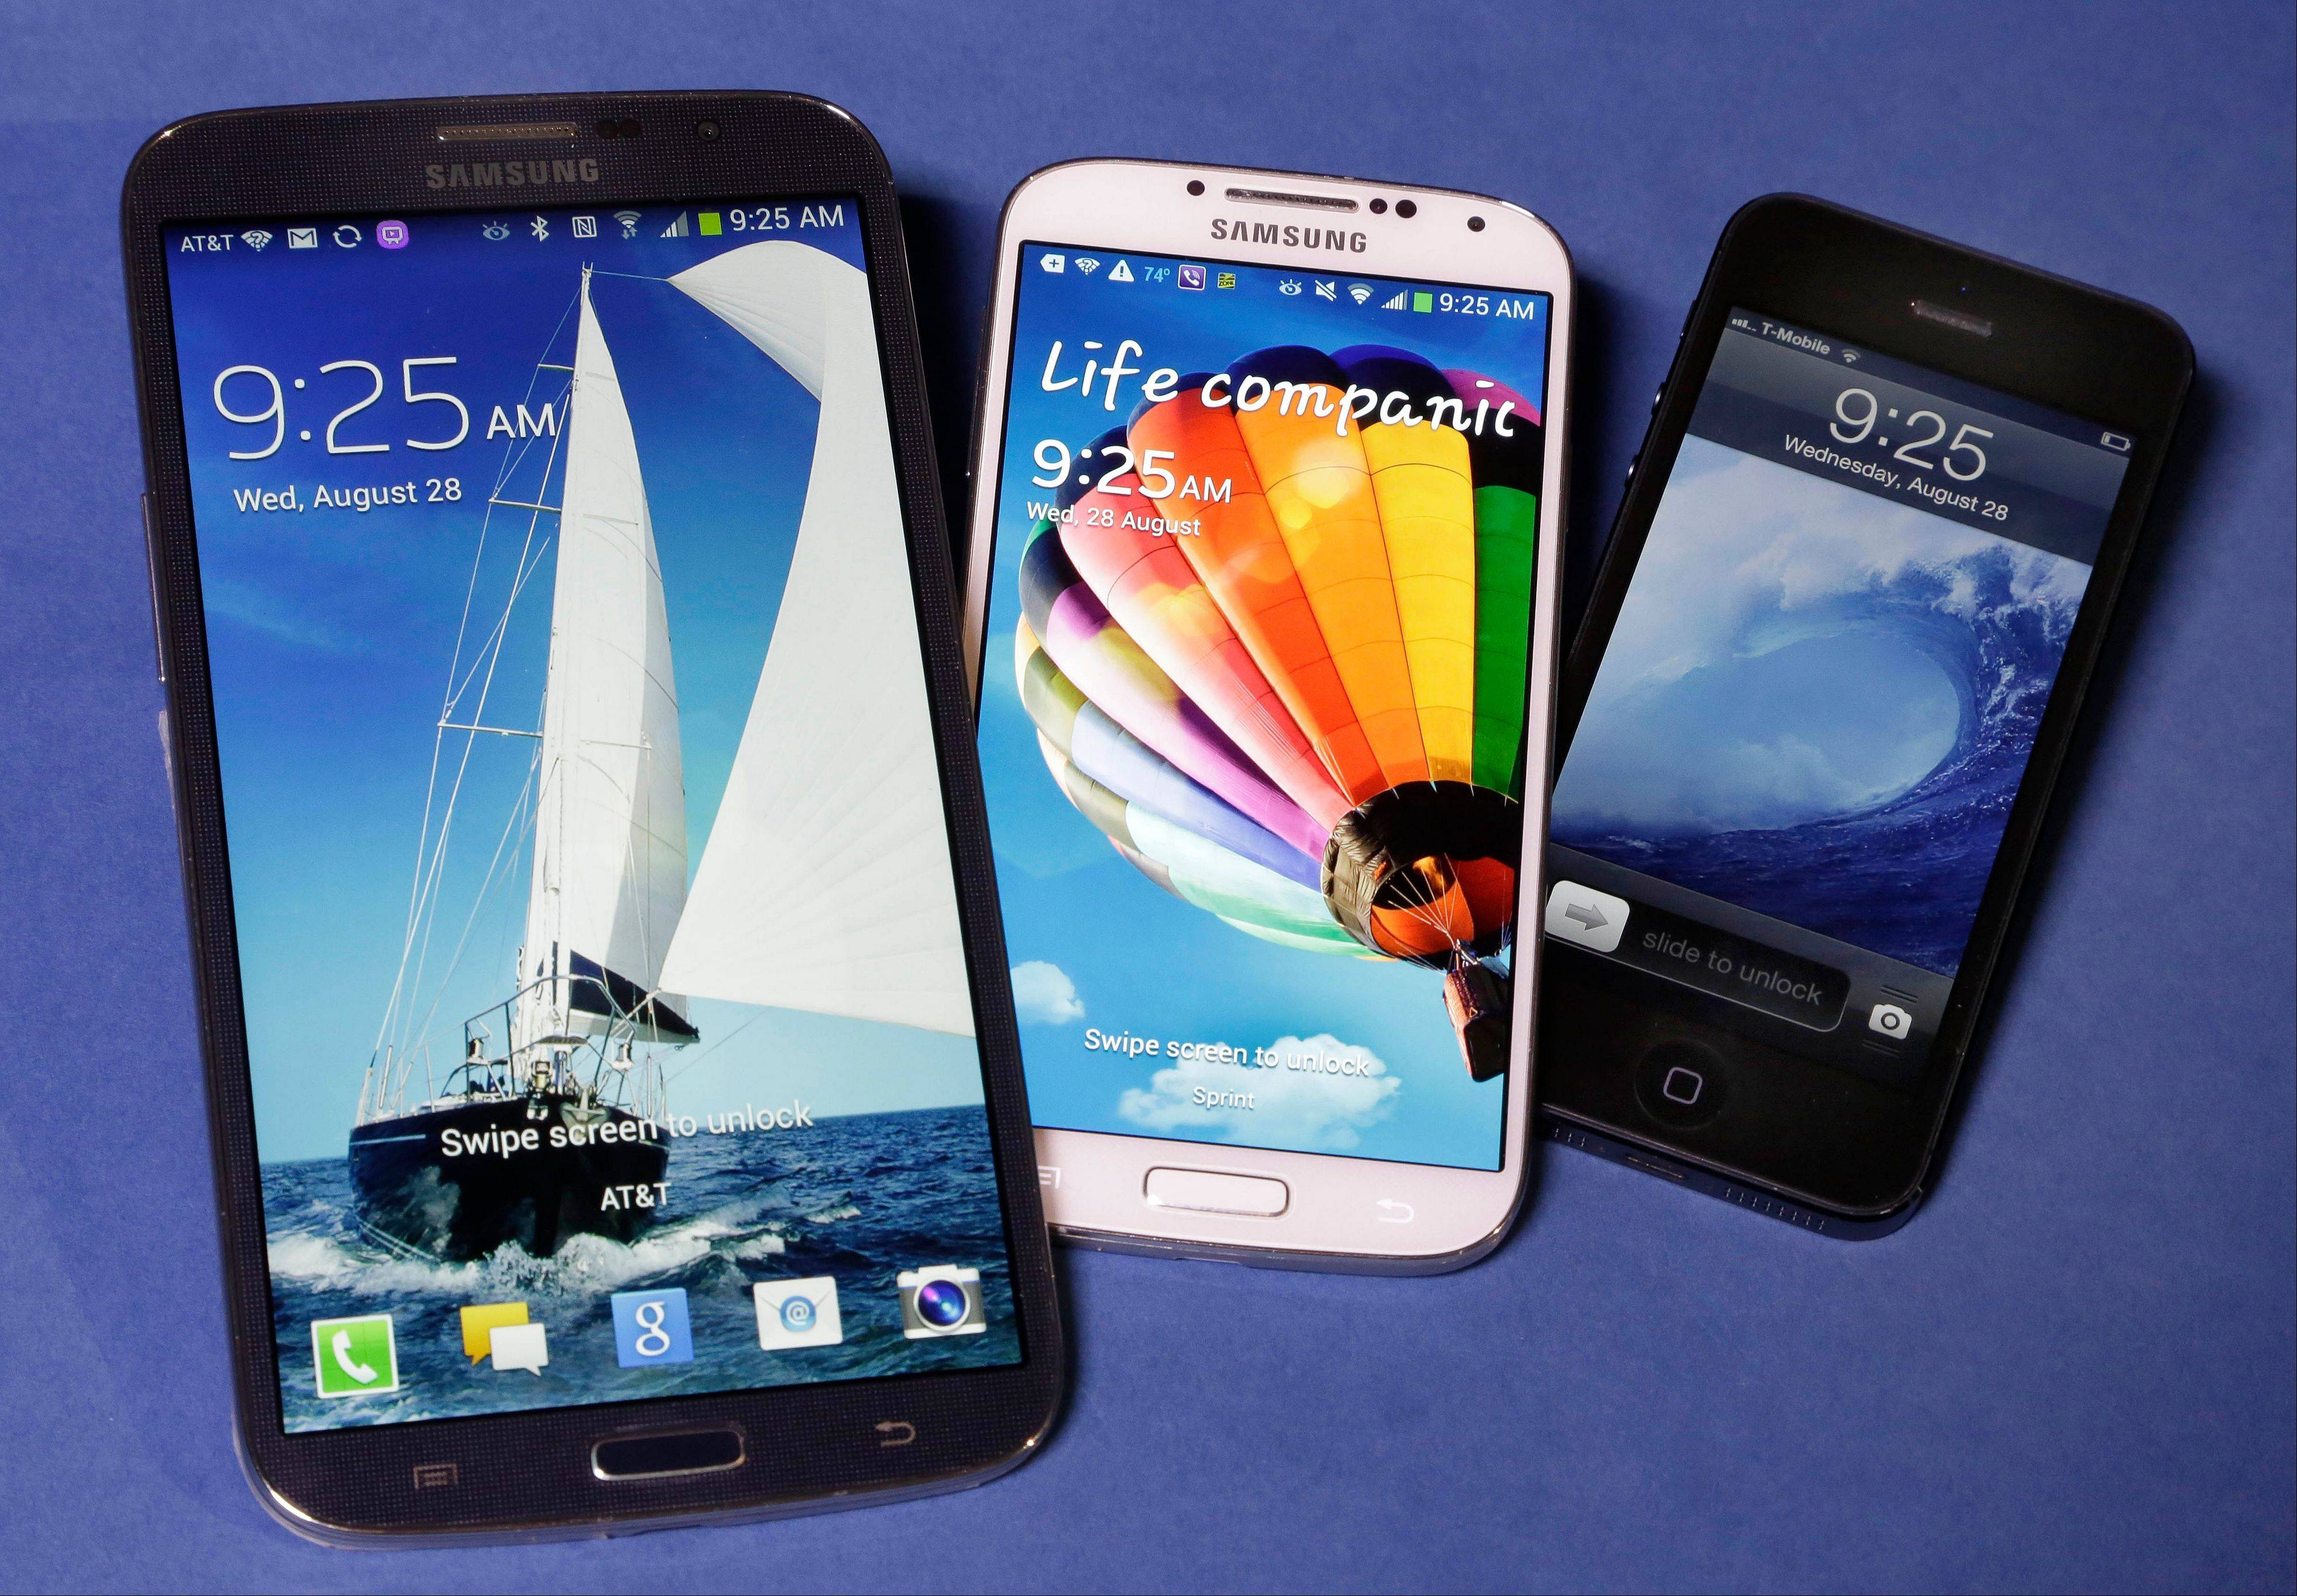 The Samsung Galaxy Mega, left, Samsung Galaxy S4, center, and Apple iPhone 5 are shown. With a screen measuring 6.3 inches diagonally, the Galaxy Mega is almost as big as a 7-inch tablet computer. The difference: It makes phone calls.